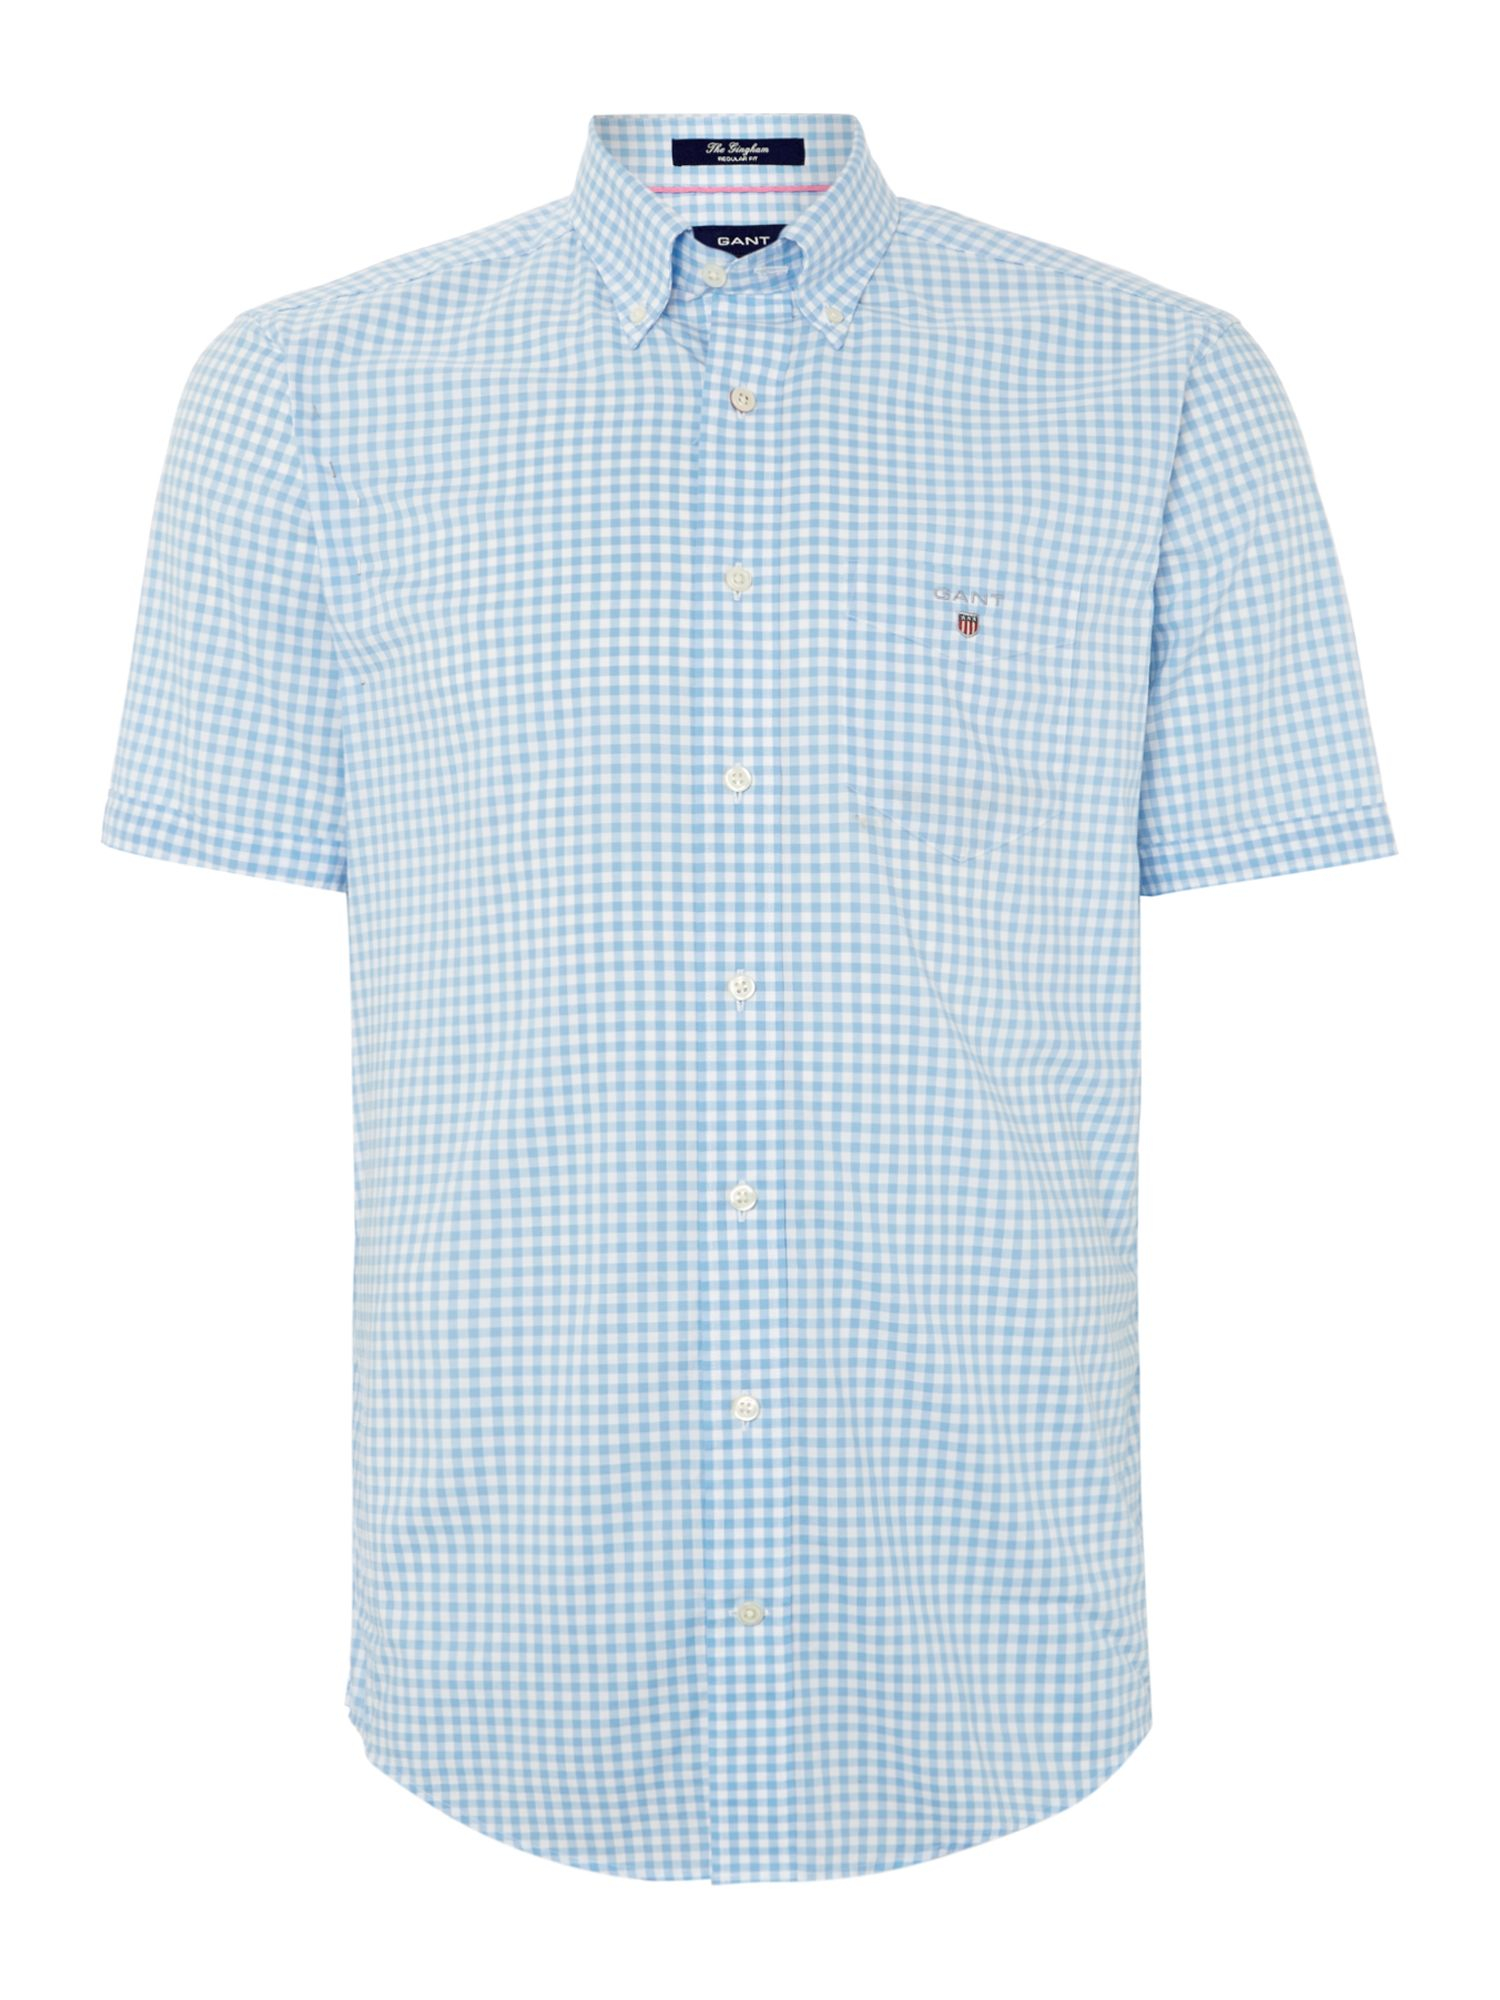 Gant gingham classic fit short sleeve shirt in blue for for Light blue short sleeve shirt mens